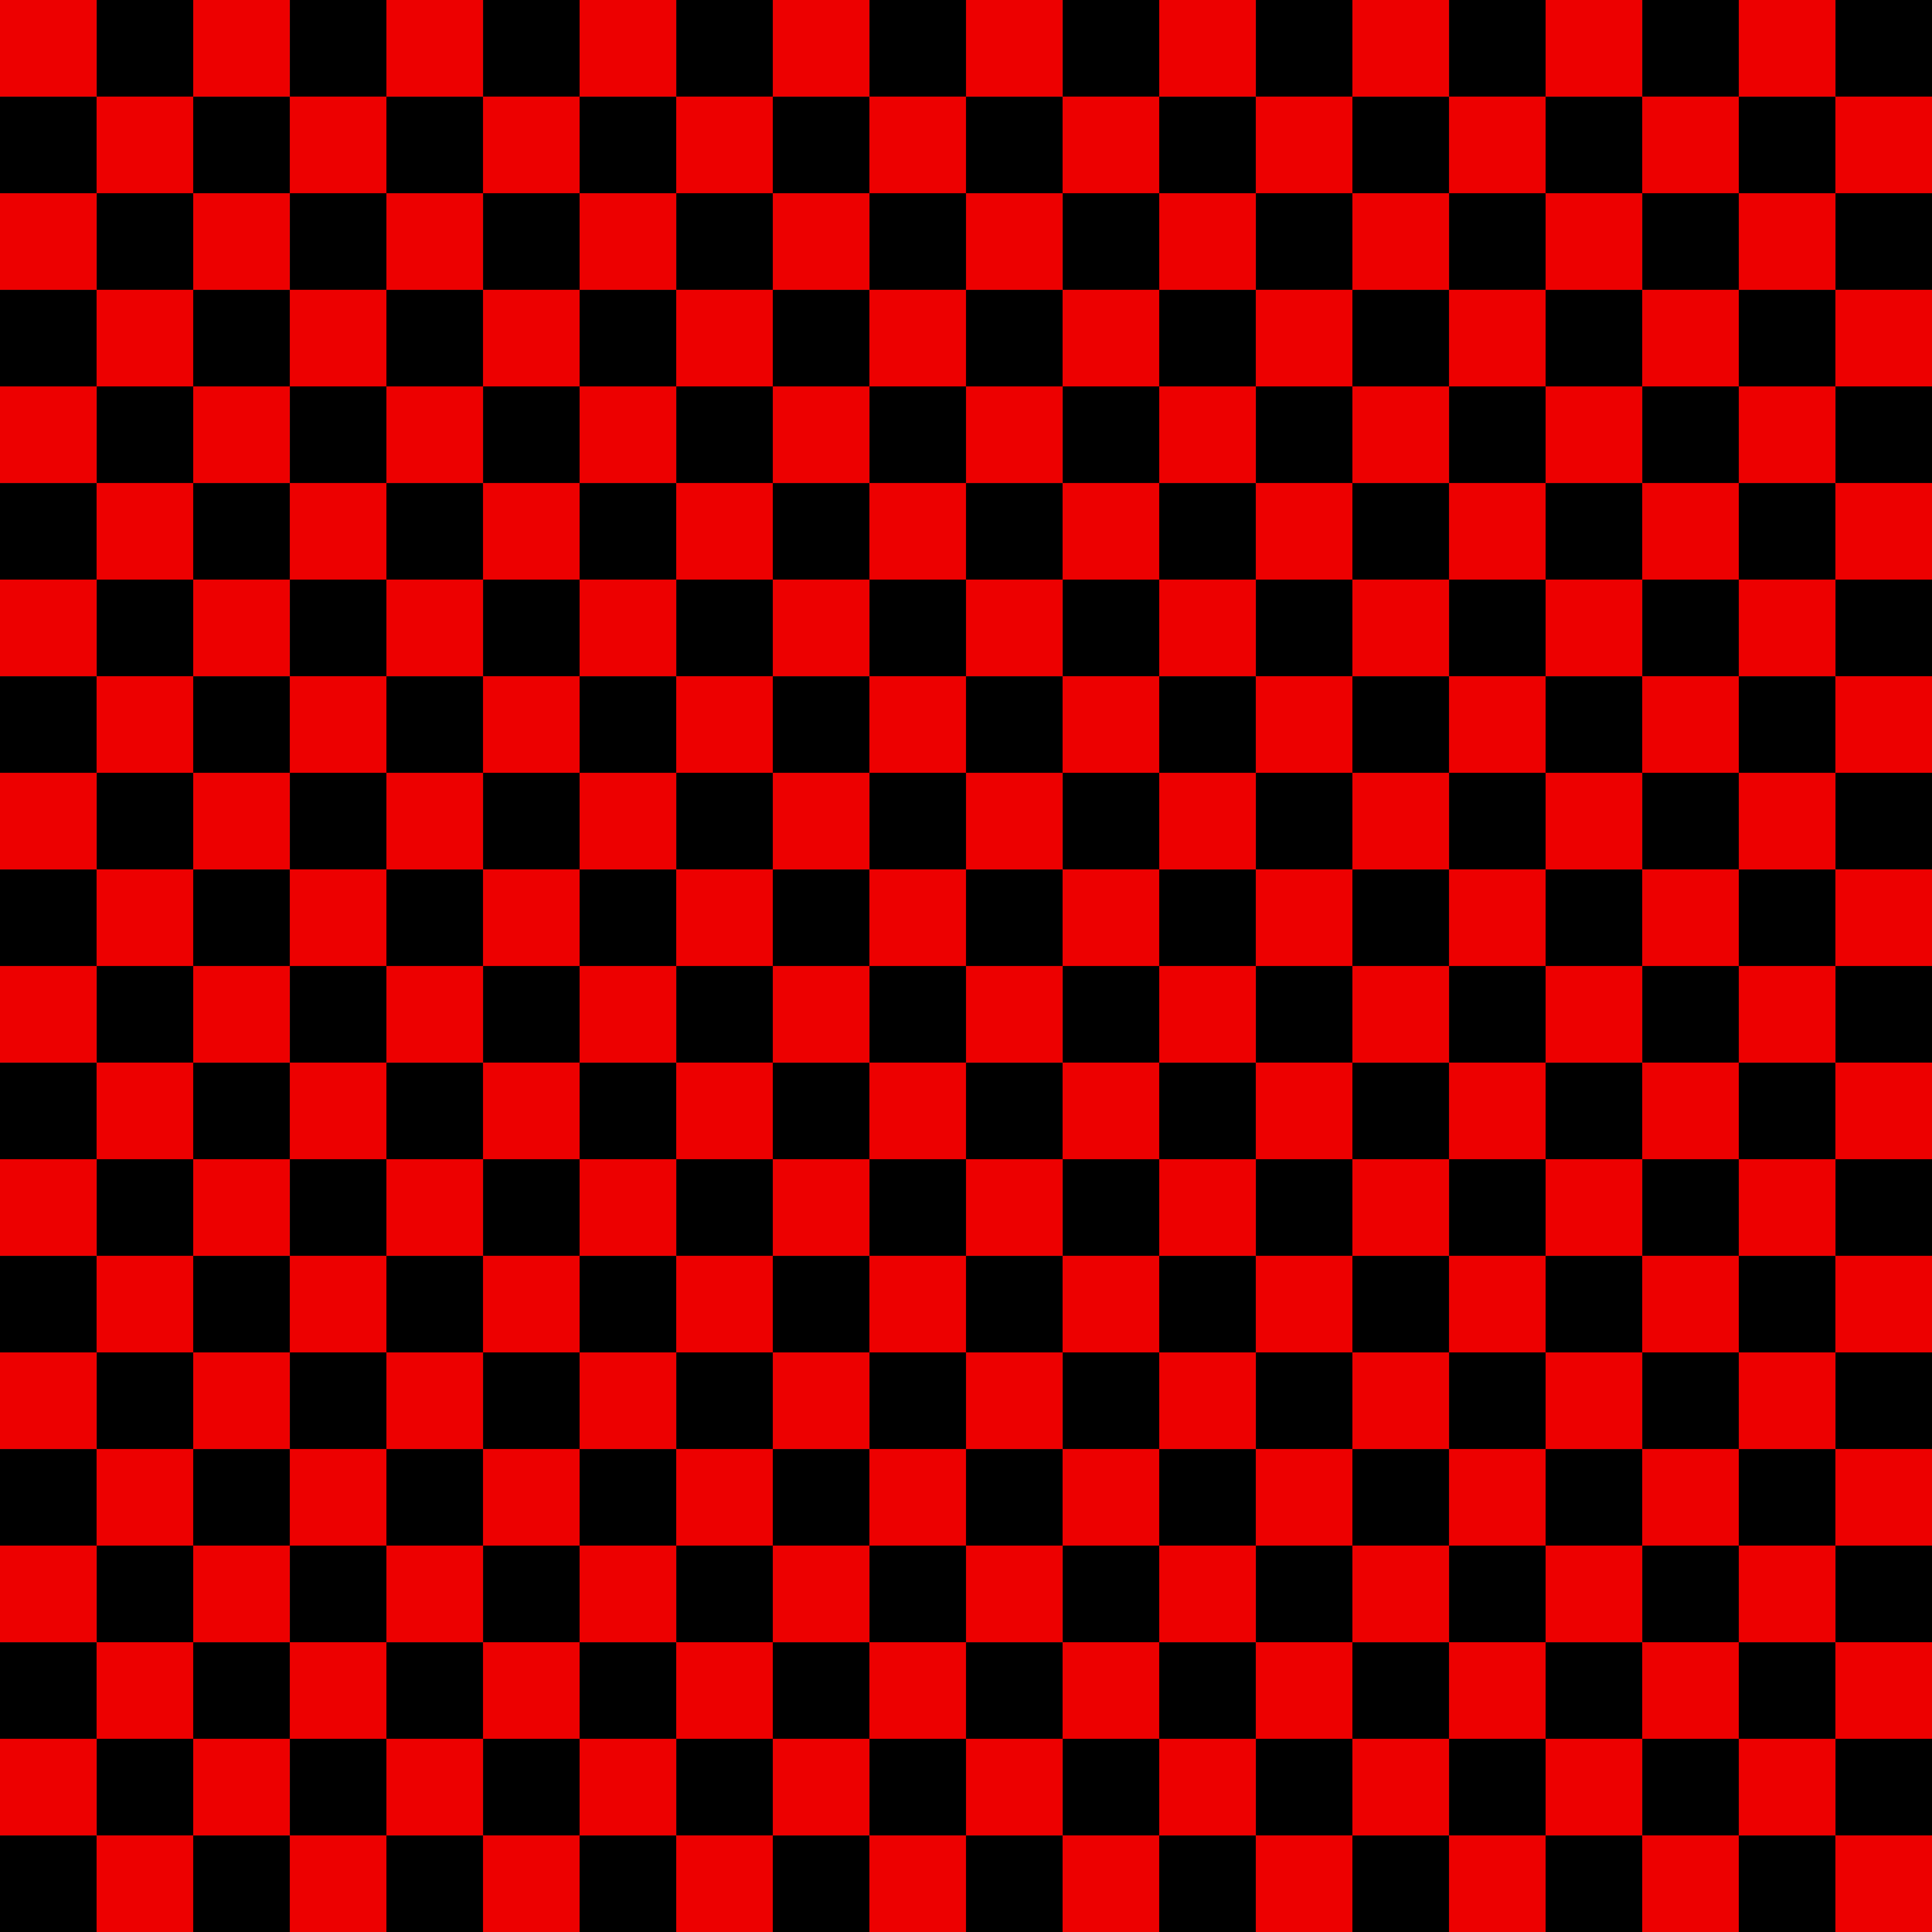 Black and Red Checkerboard Pattern.